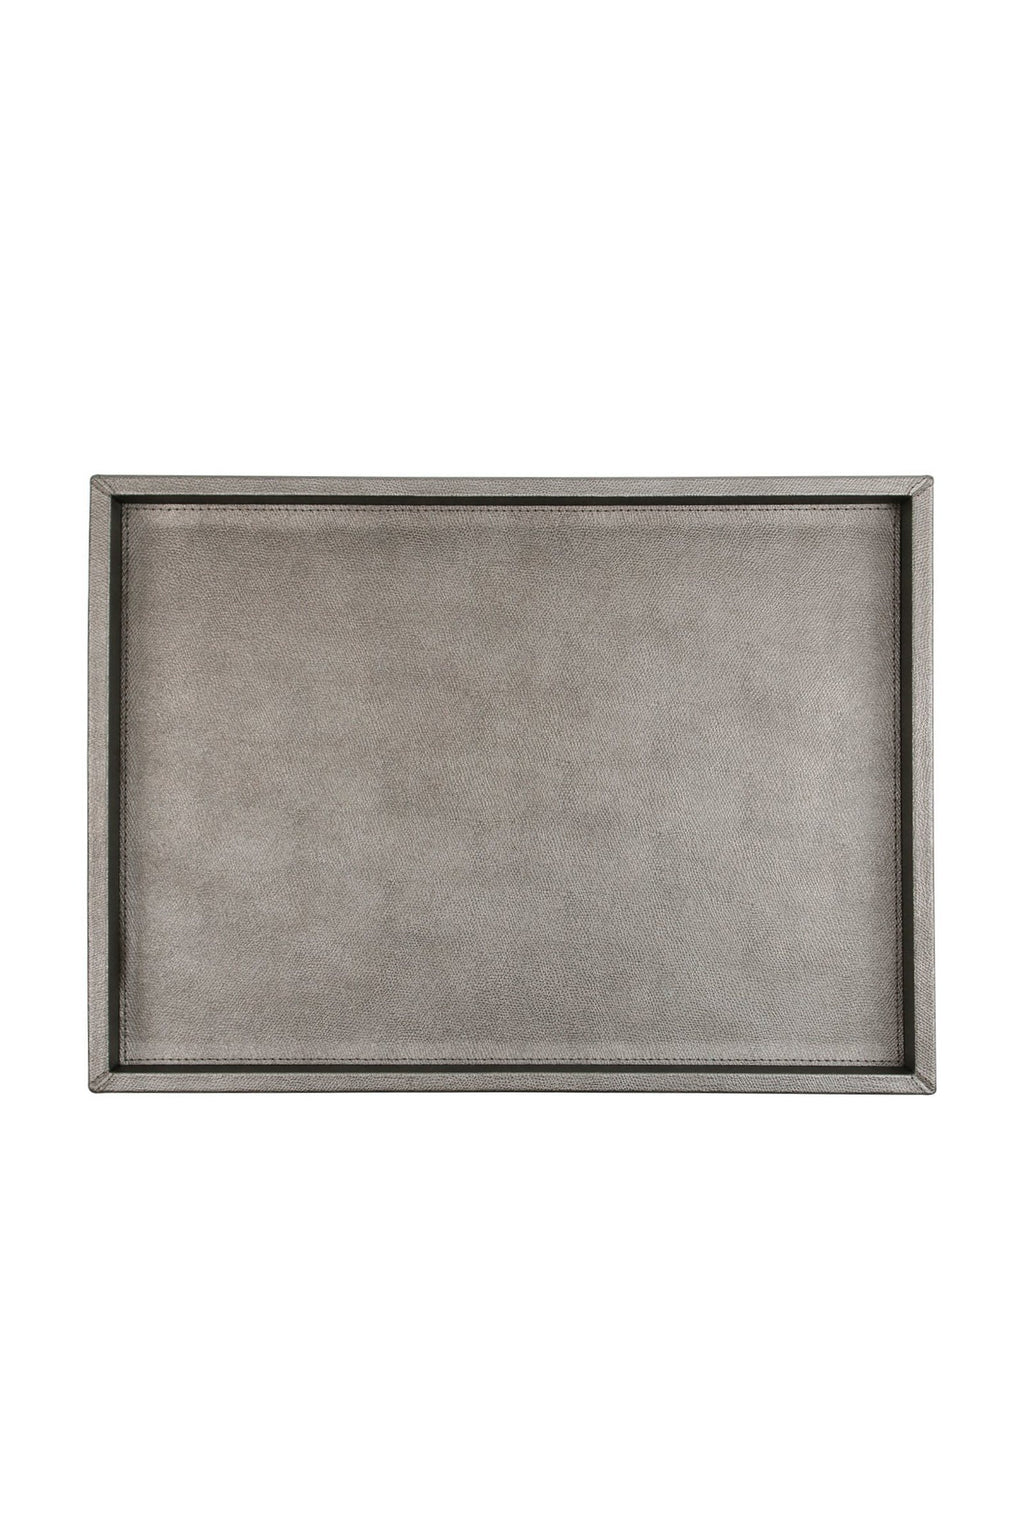 Dark Silver Medium Tray Marie France Van Damme Medium Dark Silver